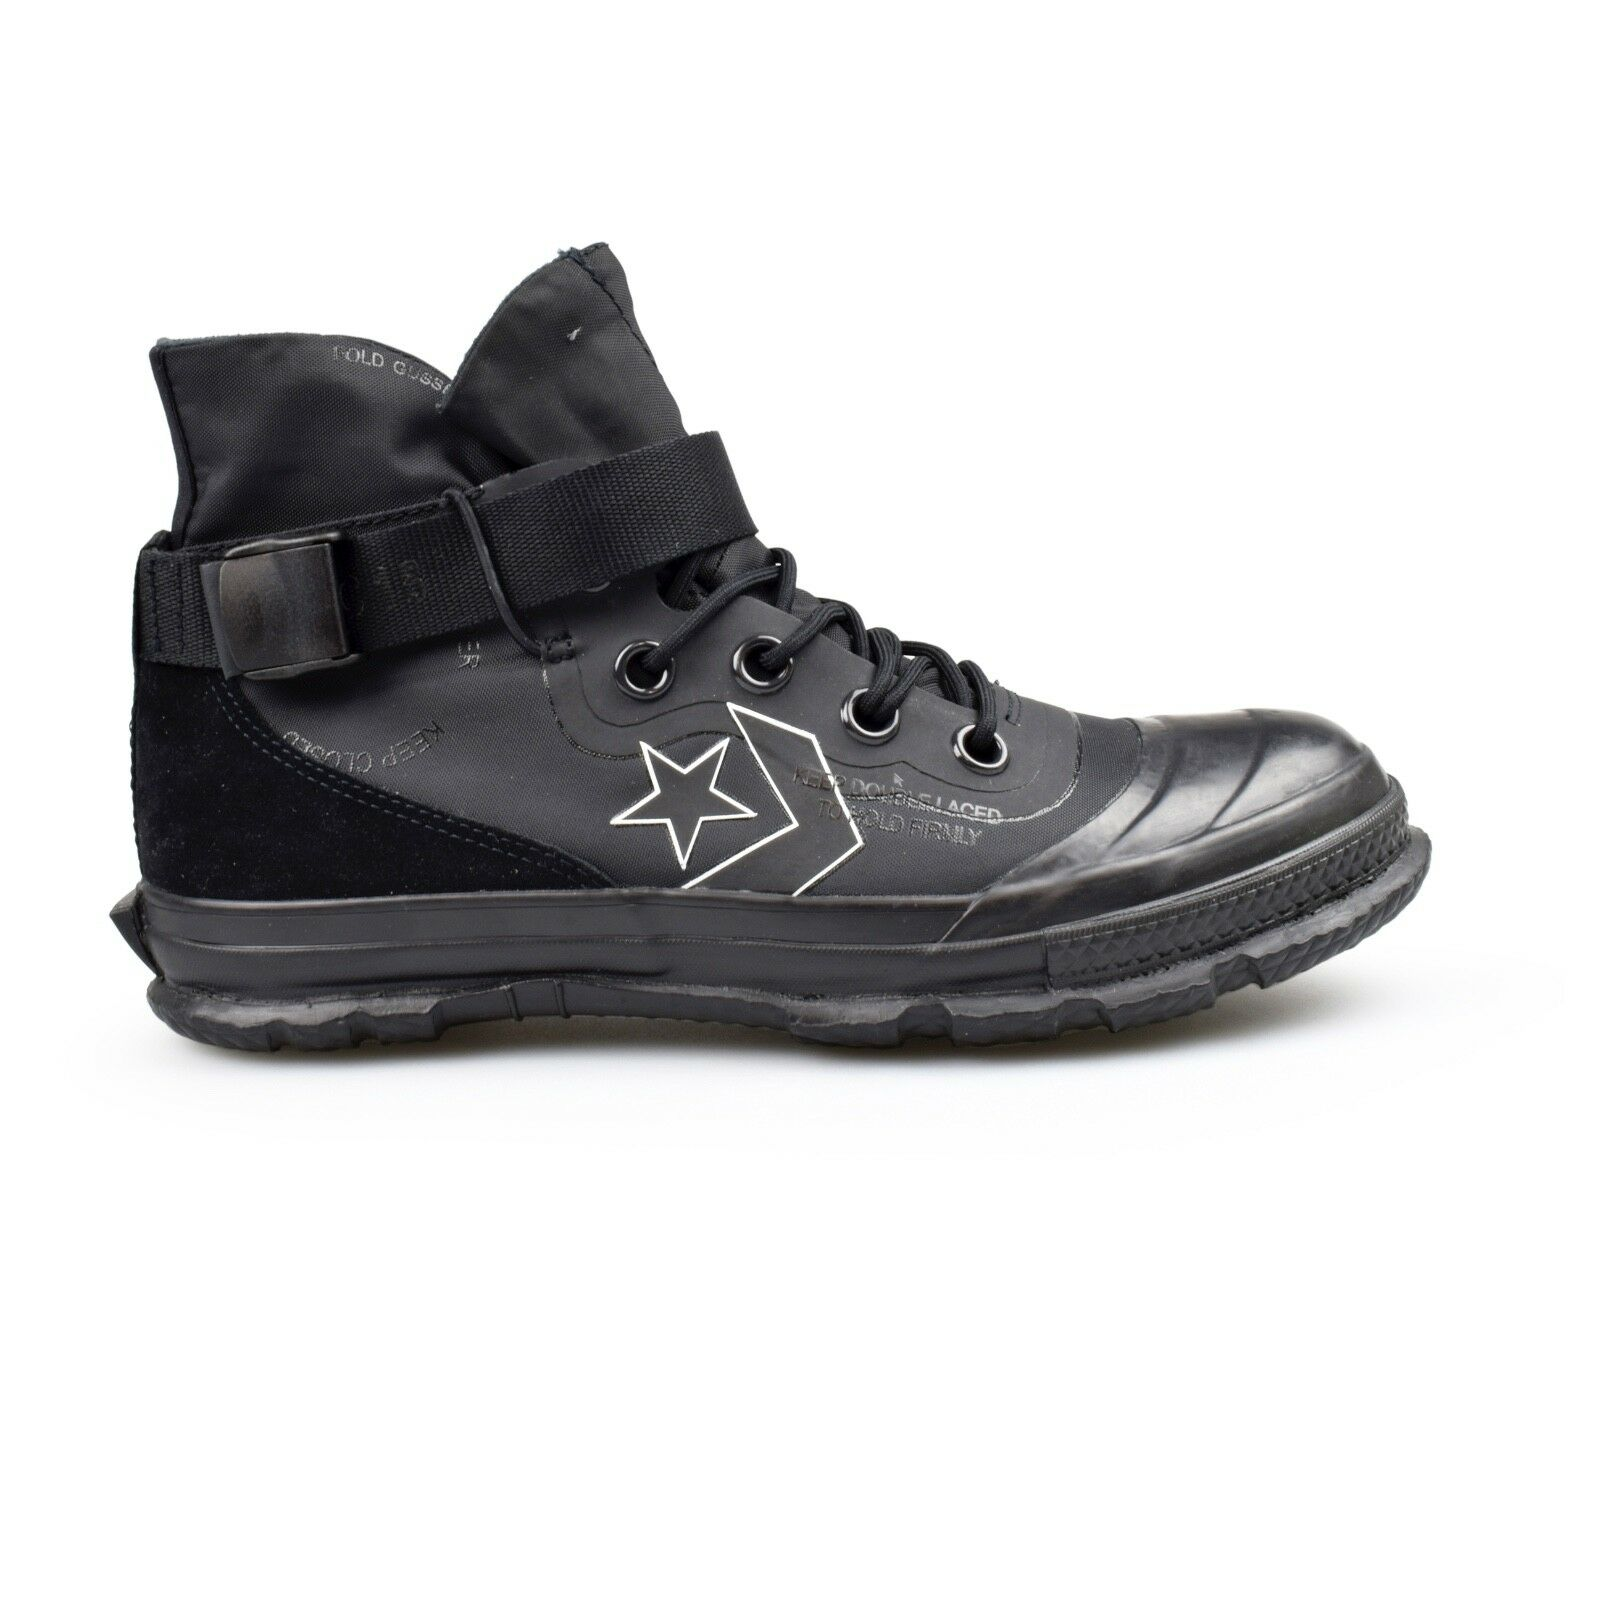 Converse Fastbreak Hi Black MC18 Mountain Club Pack Mens Trainer Boots New